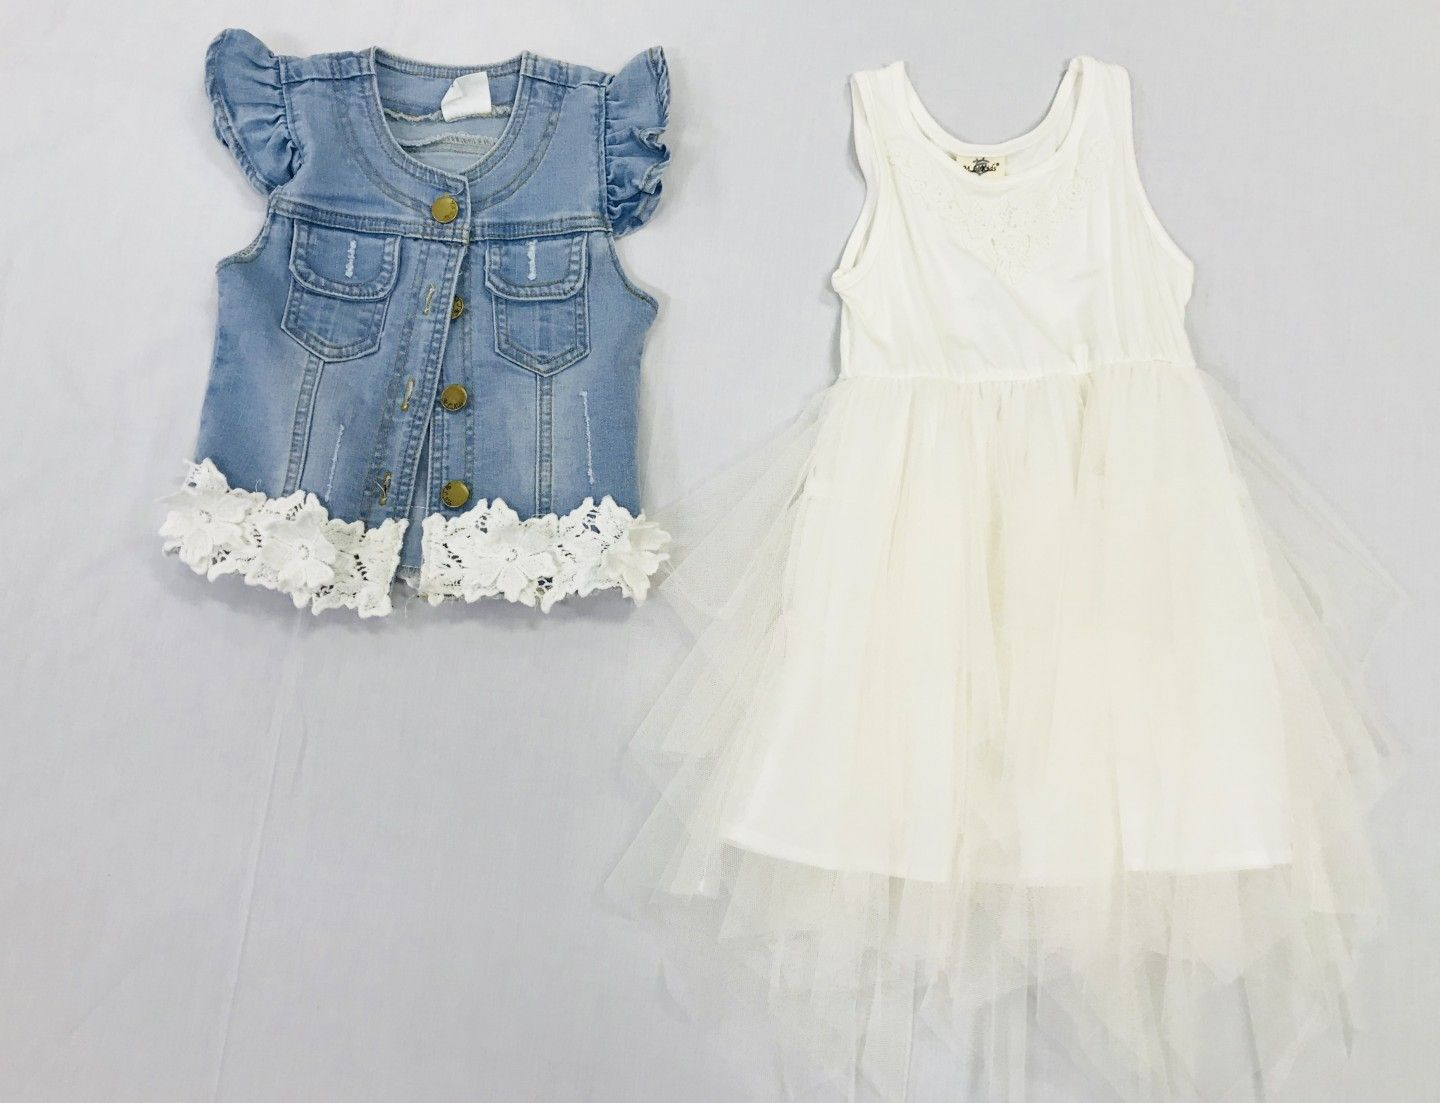 ML KIDS WHITE DRESS AND JEAN VEST 2-PIECE SET SIZES 2T-4T